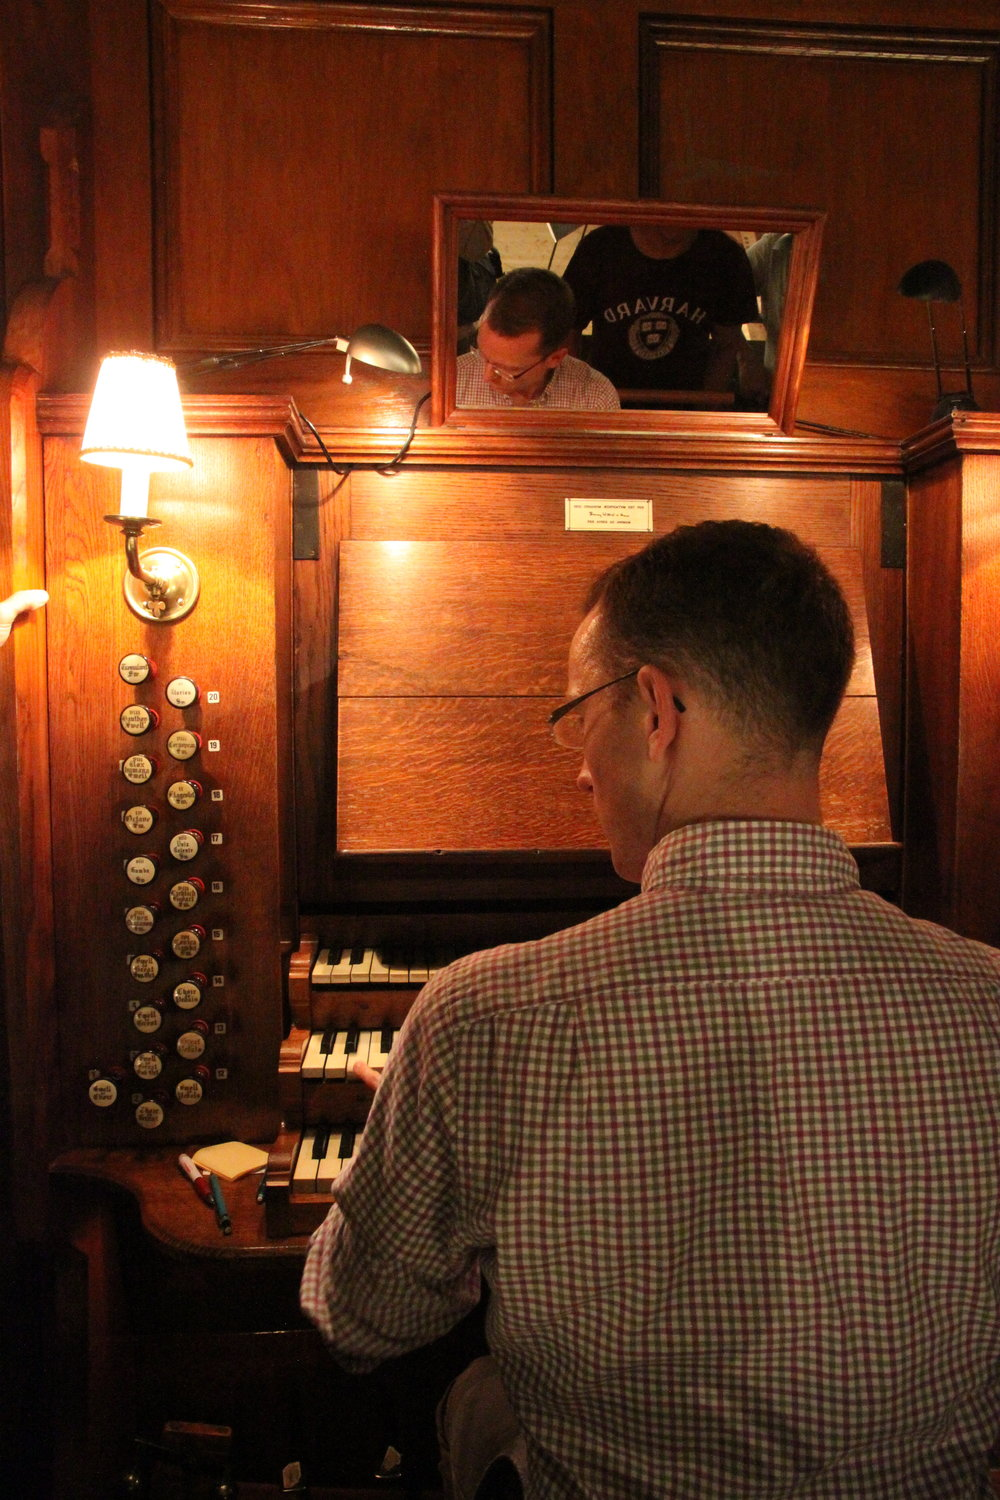 Christian Lane demonstrates the 1871 Willis Organ in Örgryte New Church, Göteborg, Sweden.